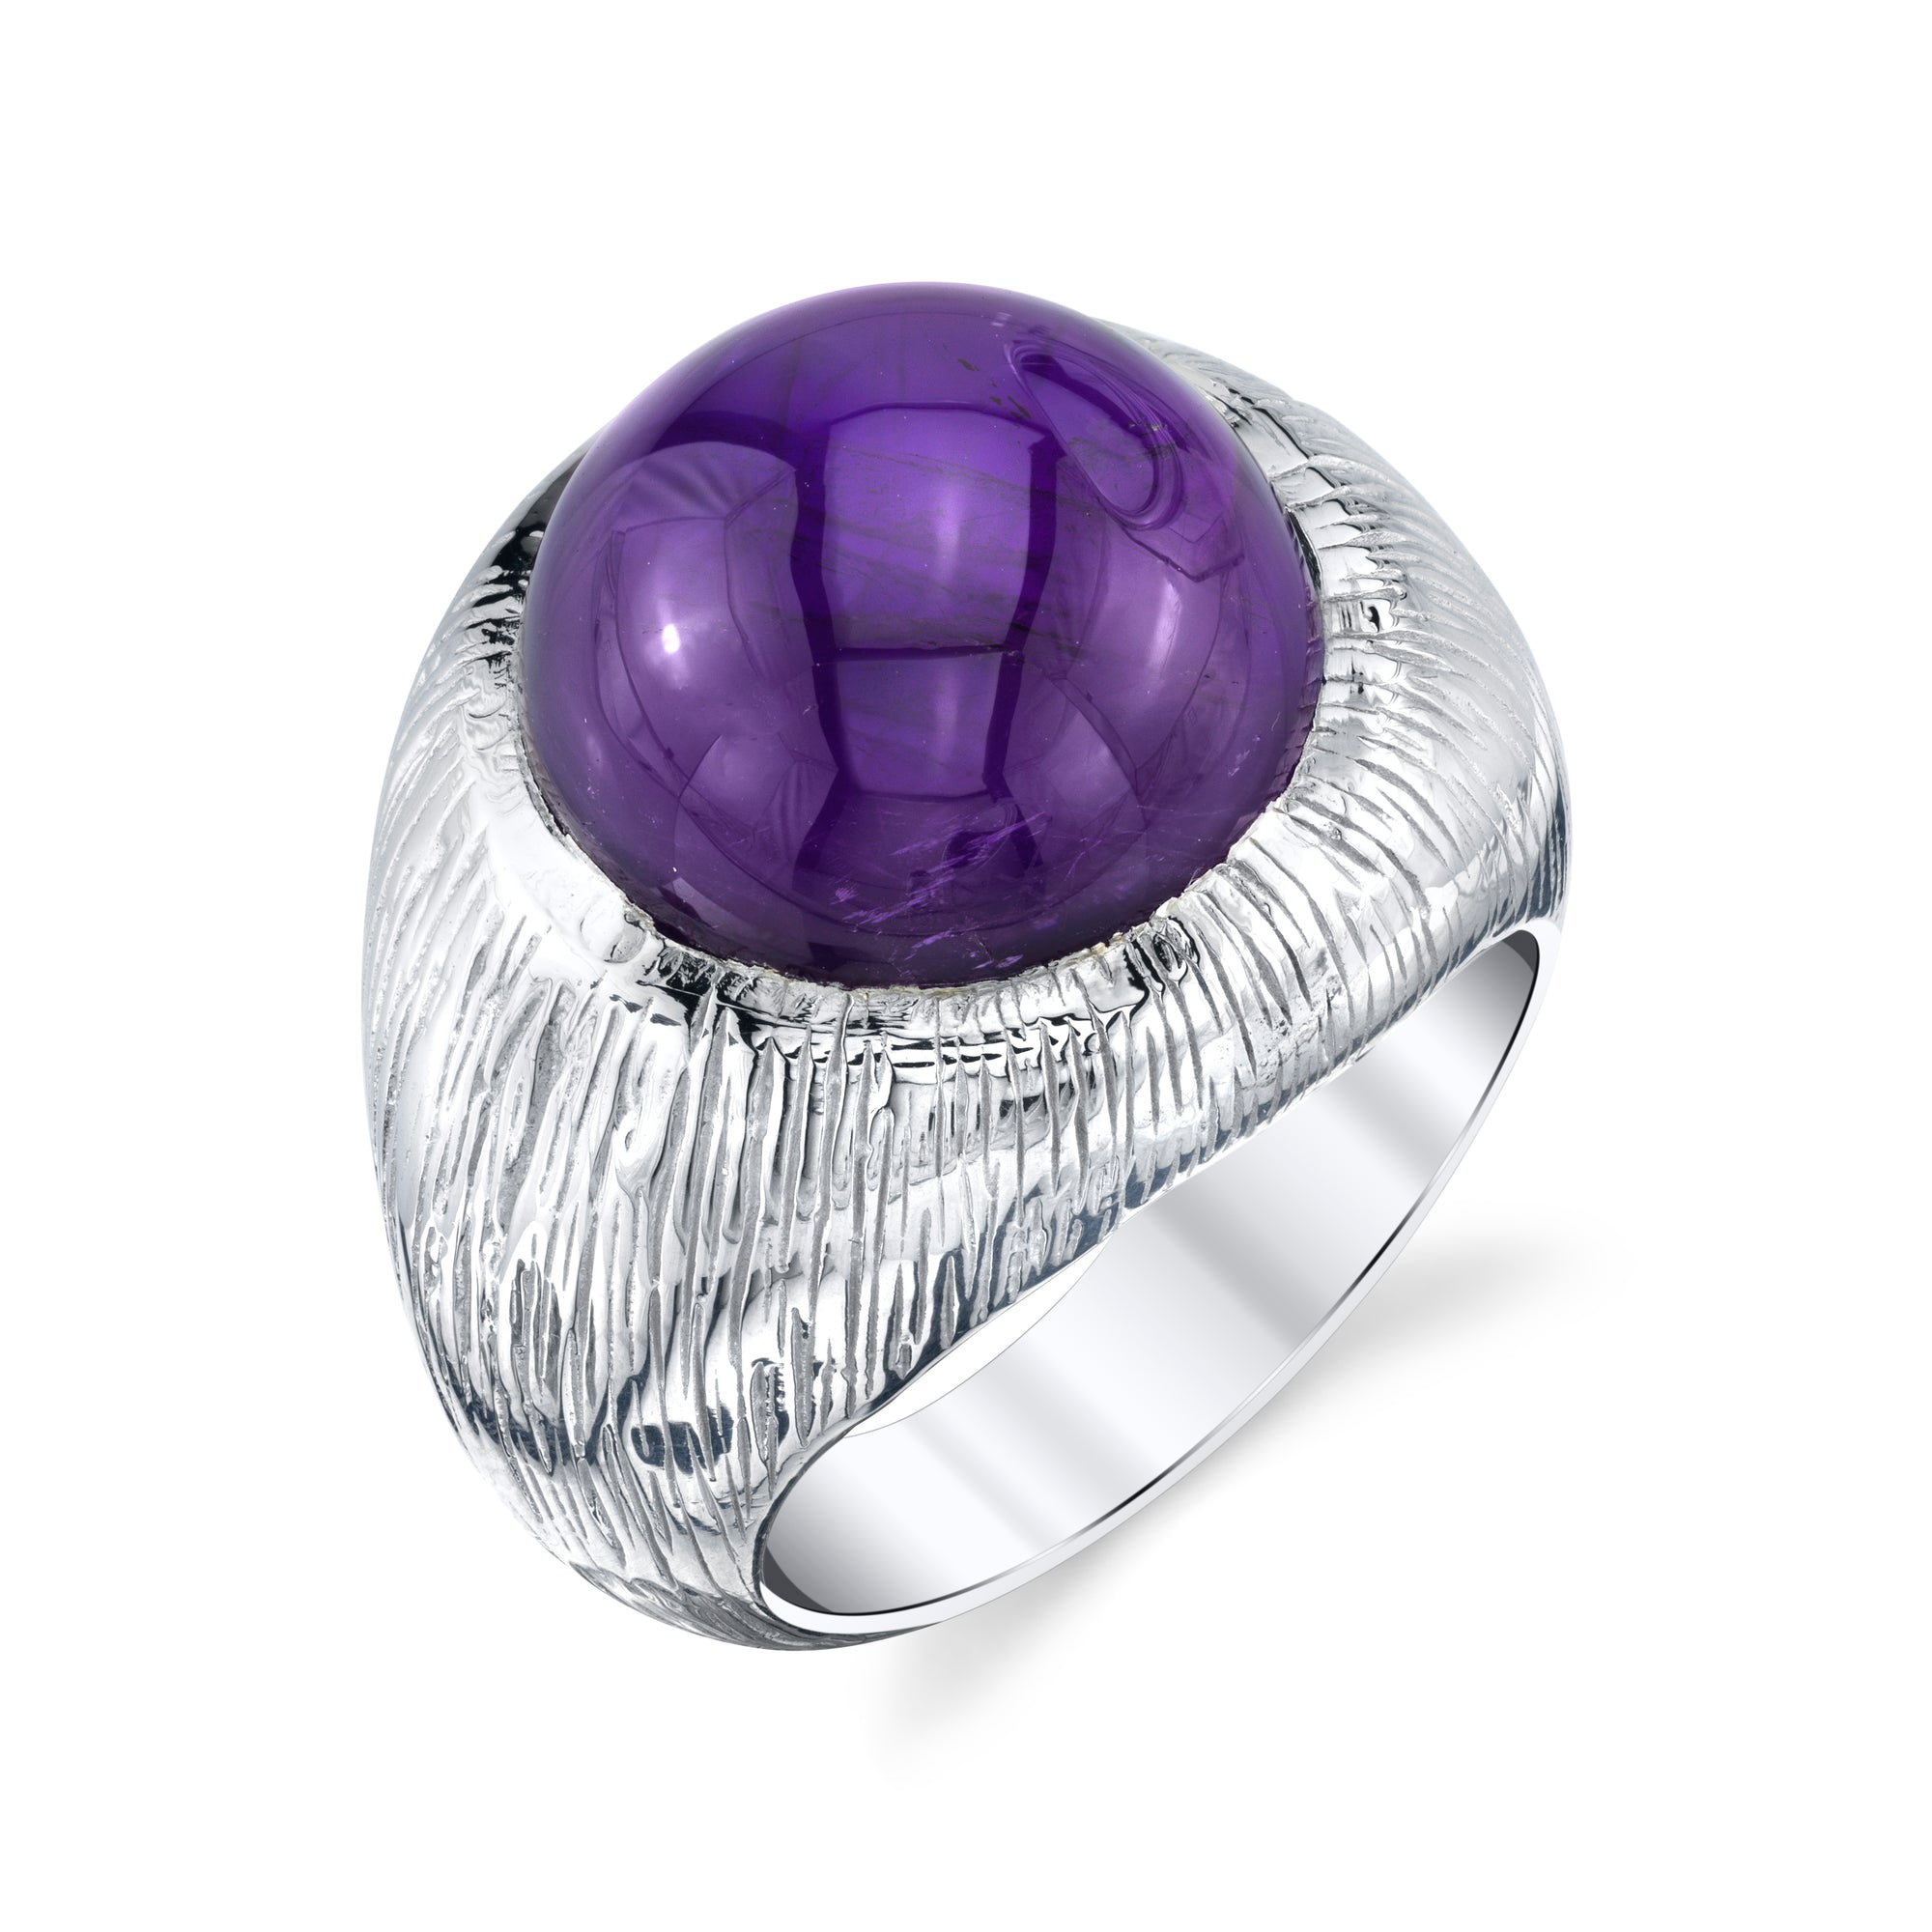 Brushed Men's Cabochon Ring